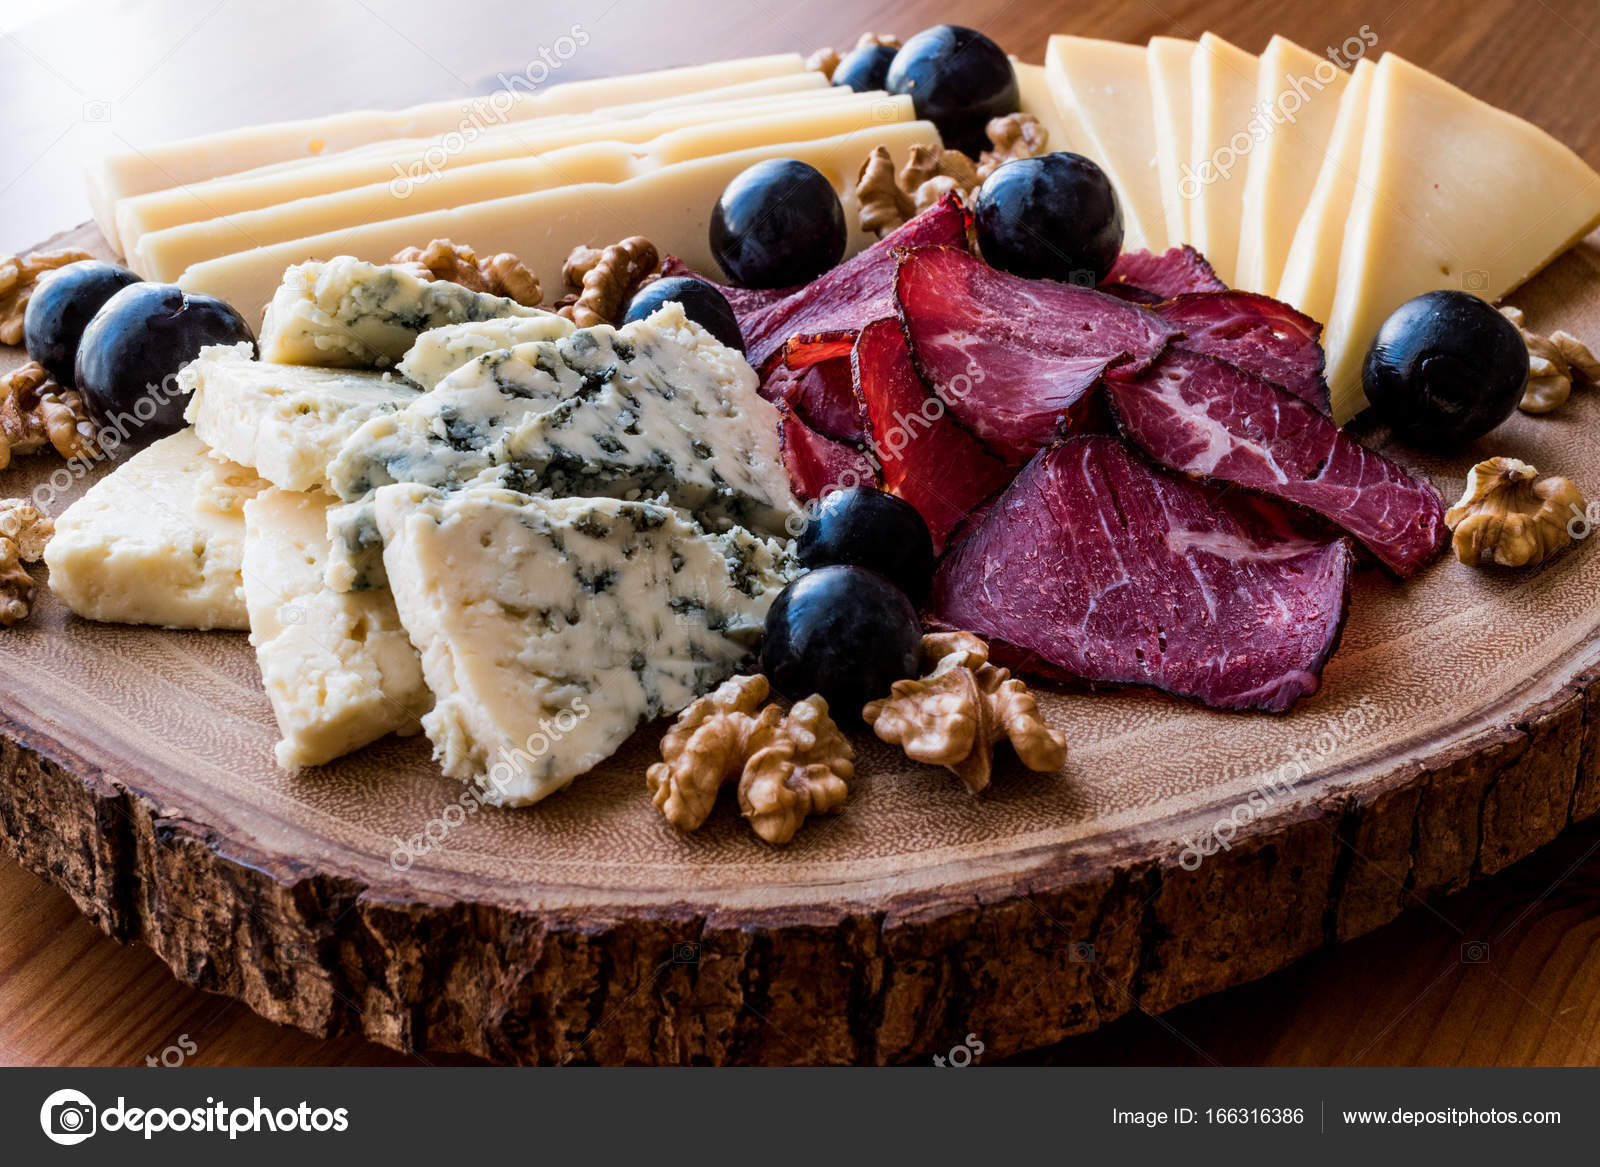 Cheese Plate with smoked meat walnuts and grapes on wooden surface u2014 Stock Photo & Cheese Plate with smoked meat walnuts and grapes on wooden surface ...